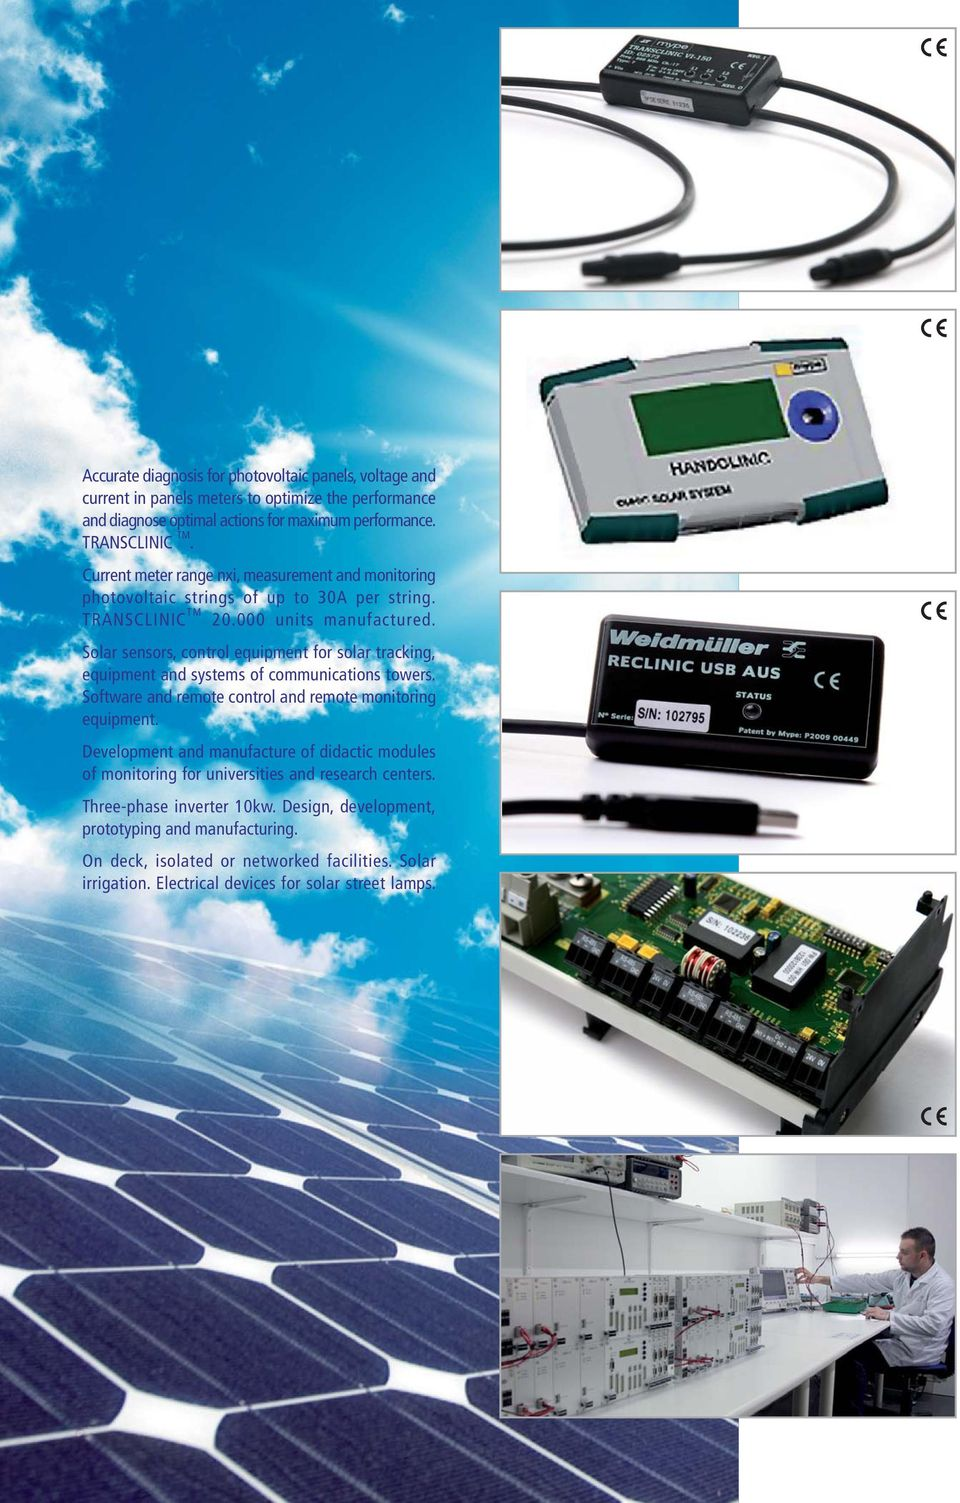 Solar sensors, control equipment for solar tracking, equipment and systems of communications towers. Software and remote control and remote monitoring equipment.